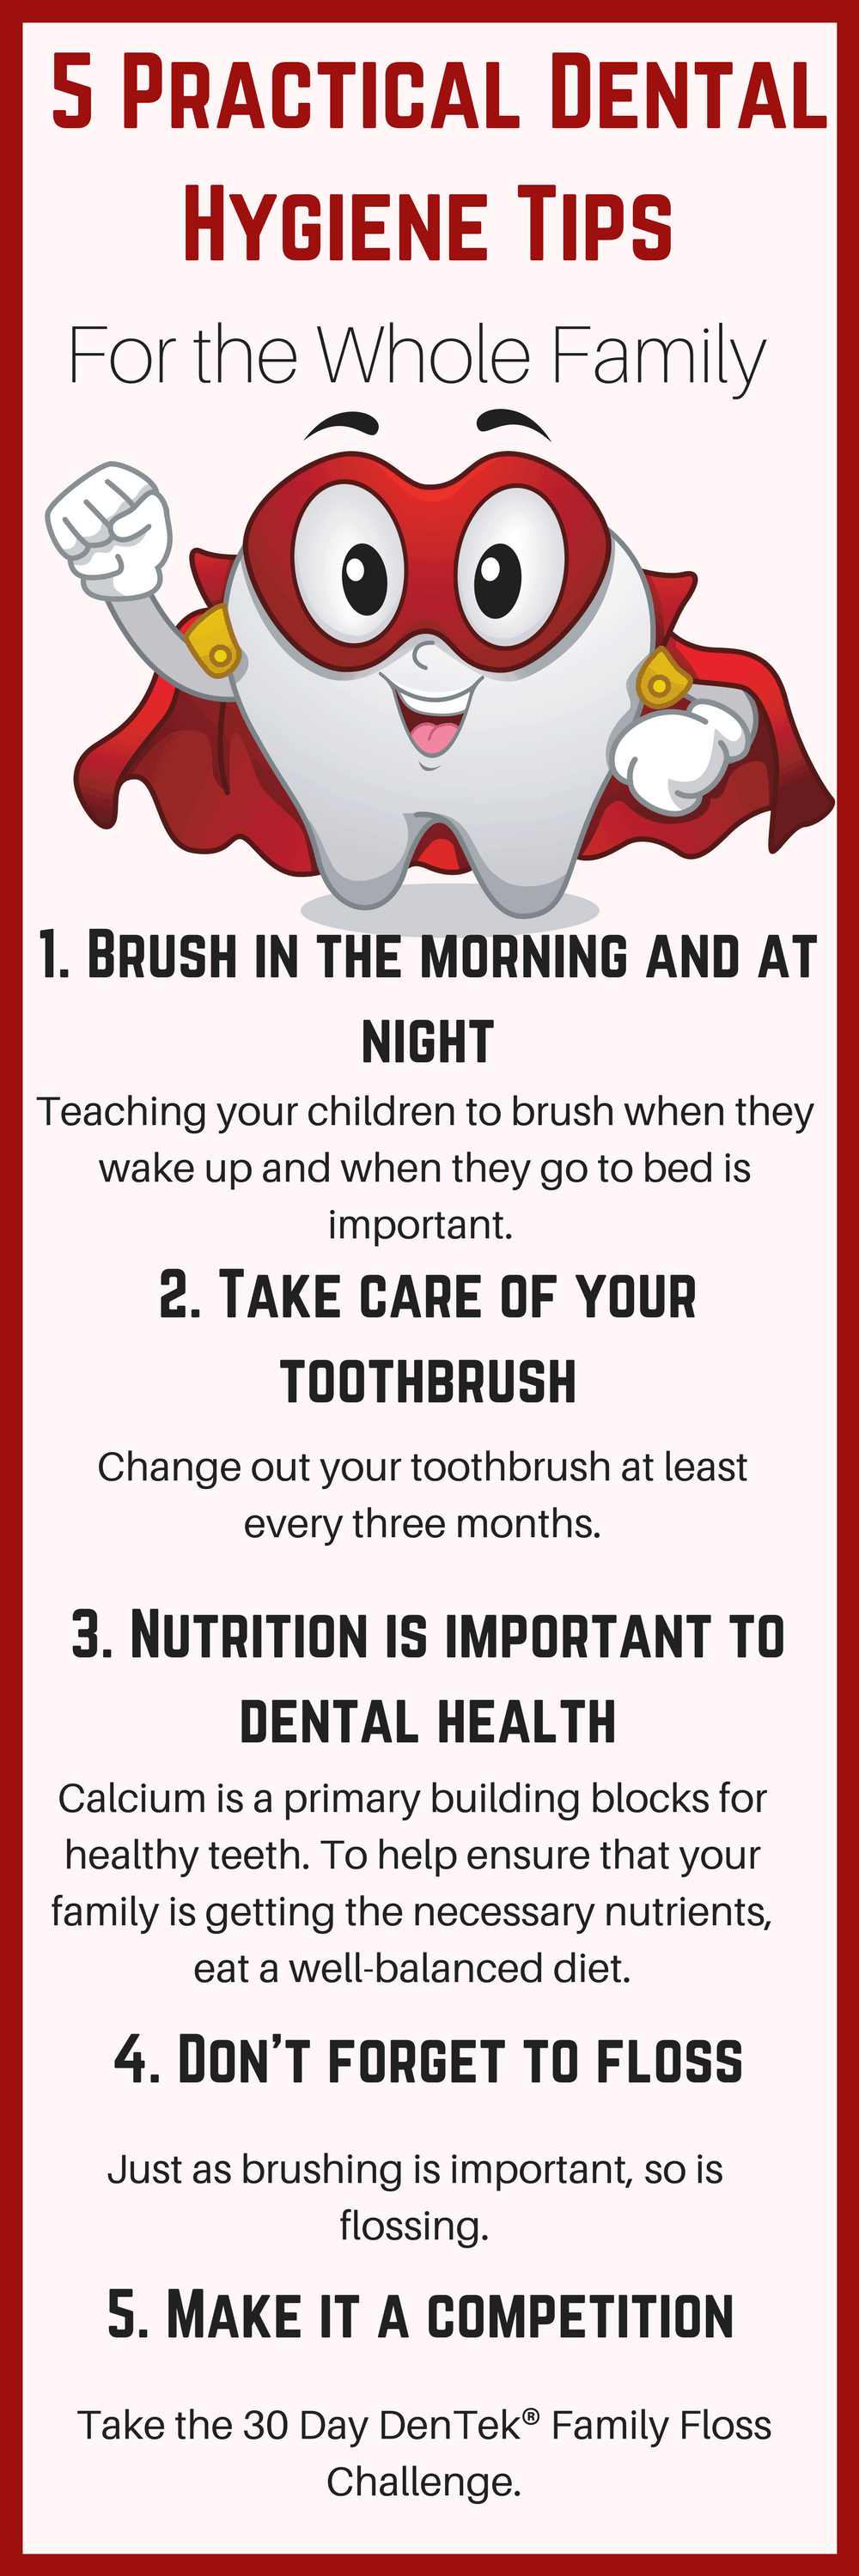 Taking care of their teeth should be a daily routine and one that cannot be neglected. Teaching them proper dental hygiene is important, and they are old enough now to do it on their own. #ad #DenTek #FamilyFlossChallenge @DenTek https://www.southernfamilyfun.com/dental-hygiene-tips-family/